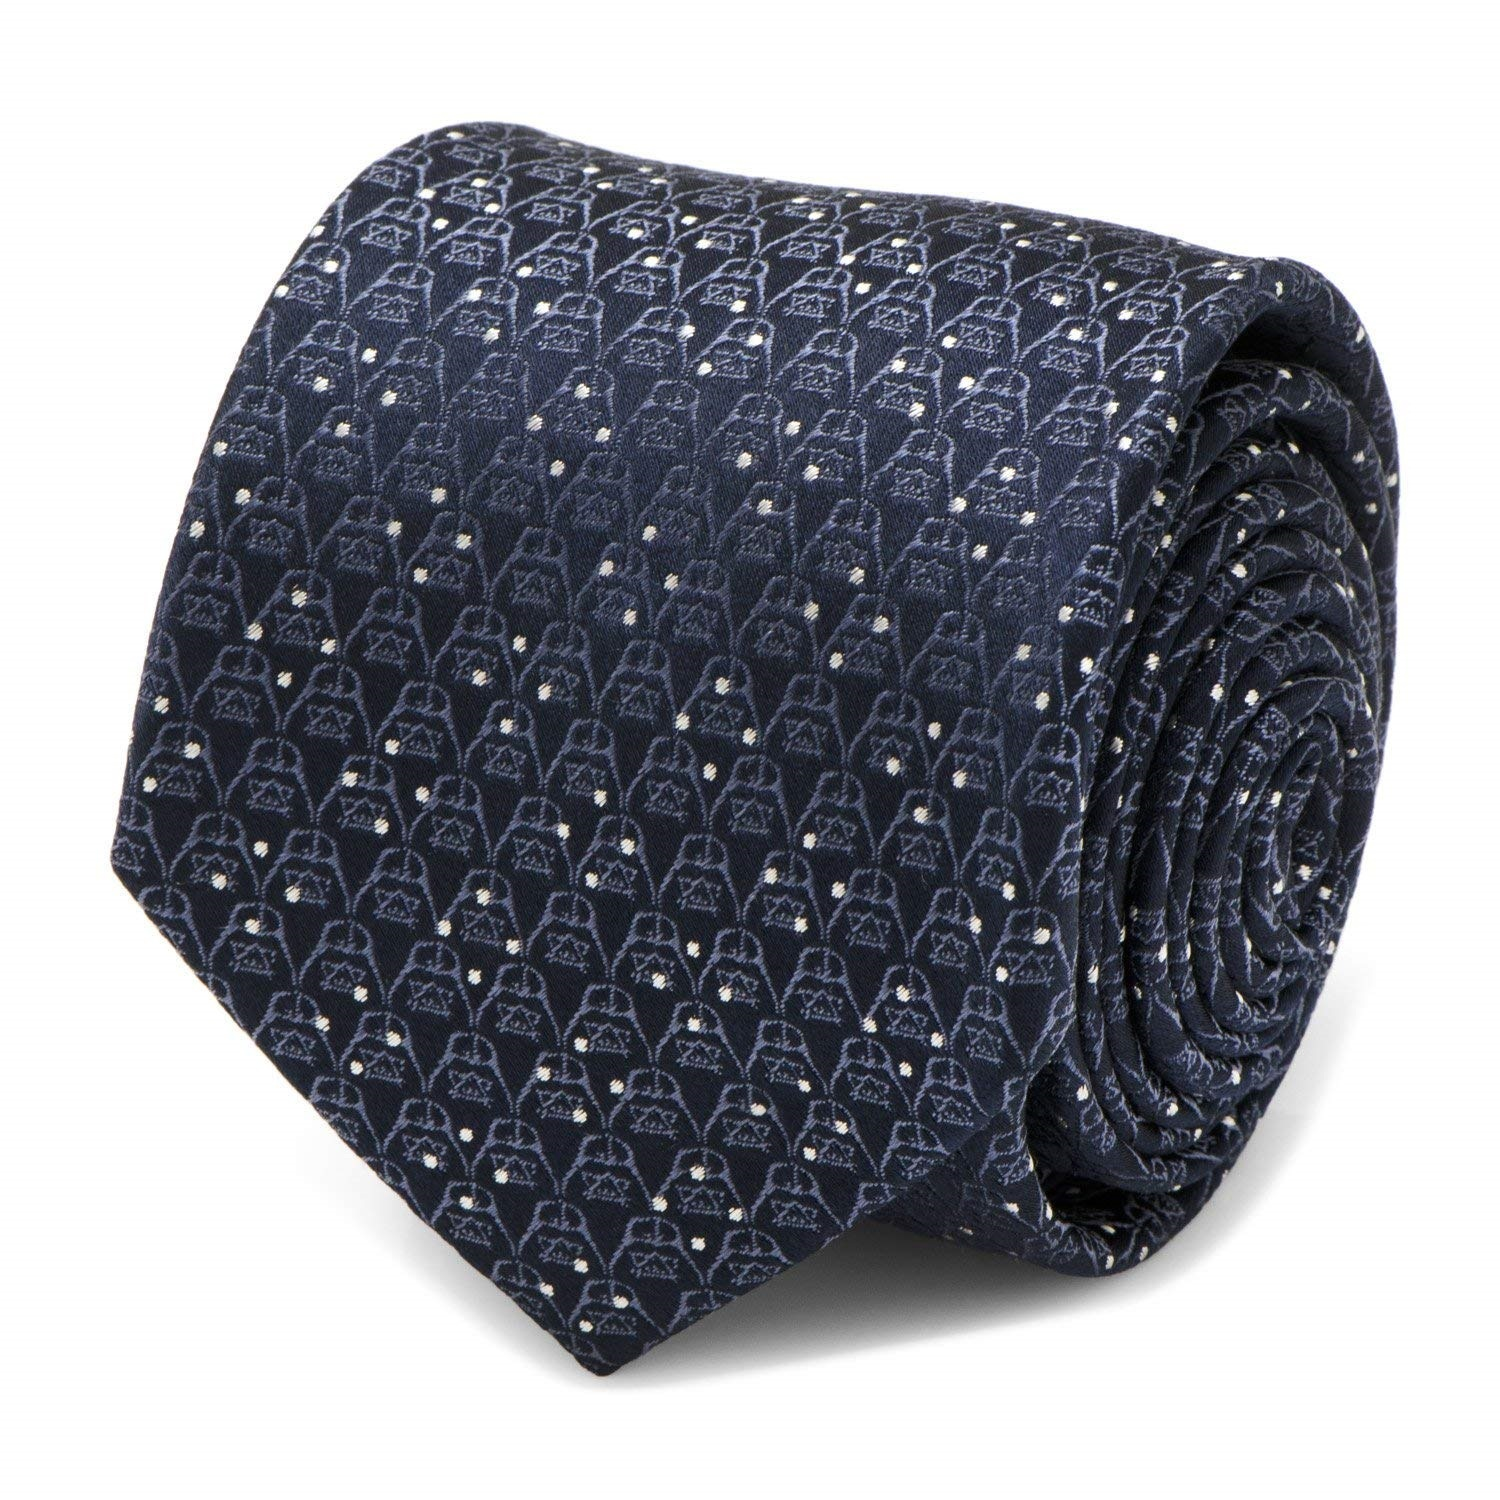 Darth Vader (Navy) - Diamond Dot Tie image